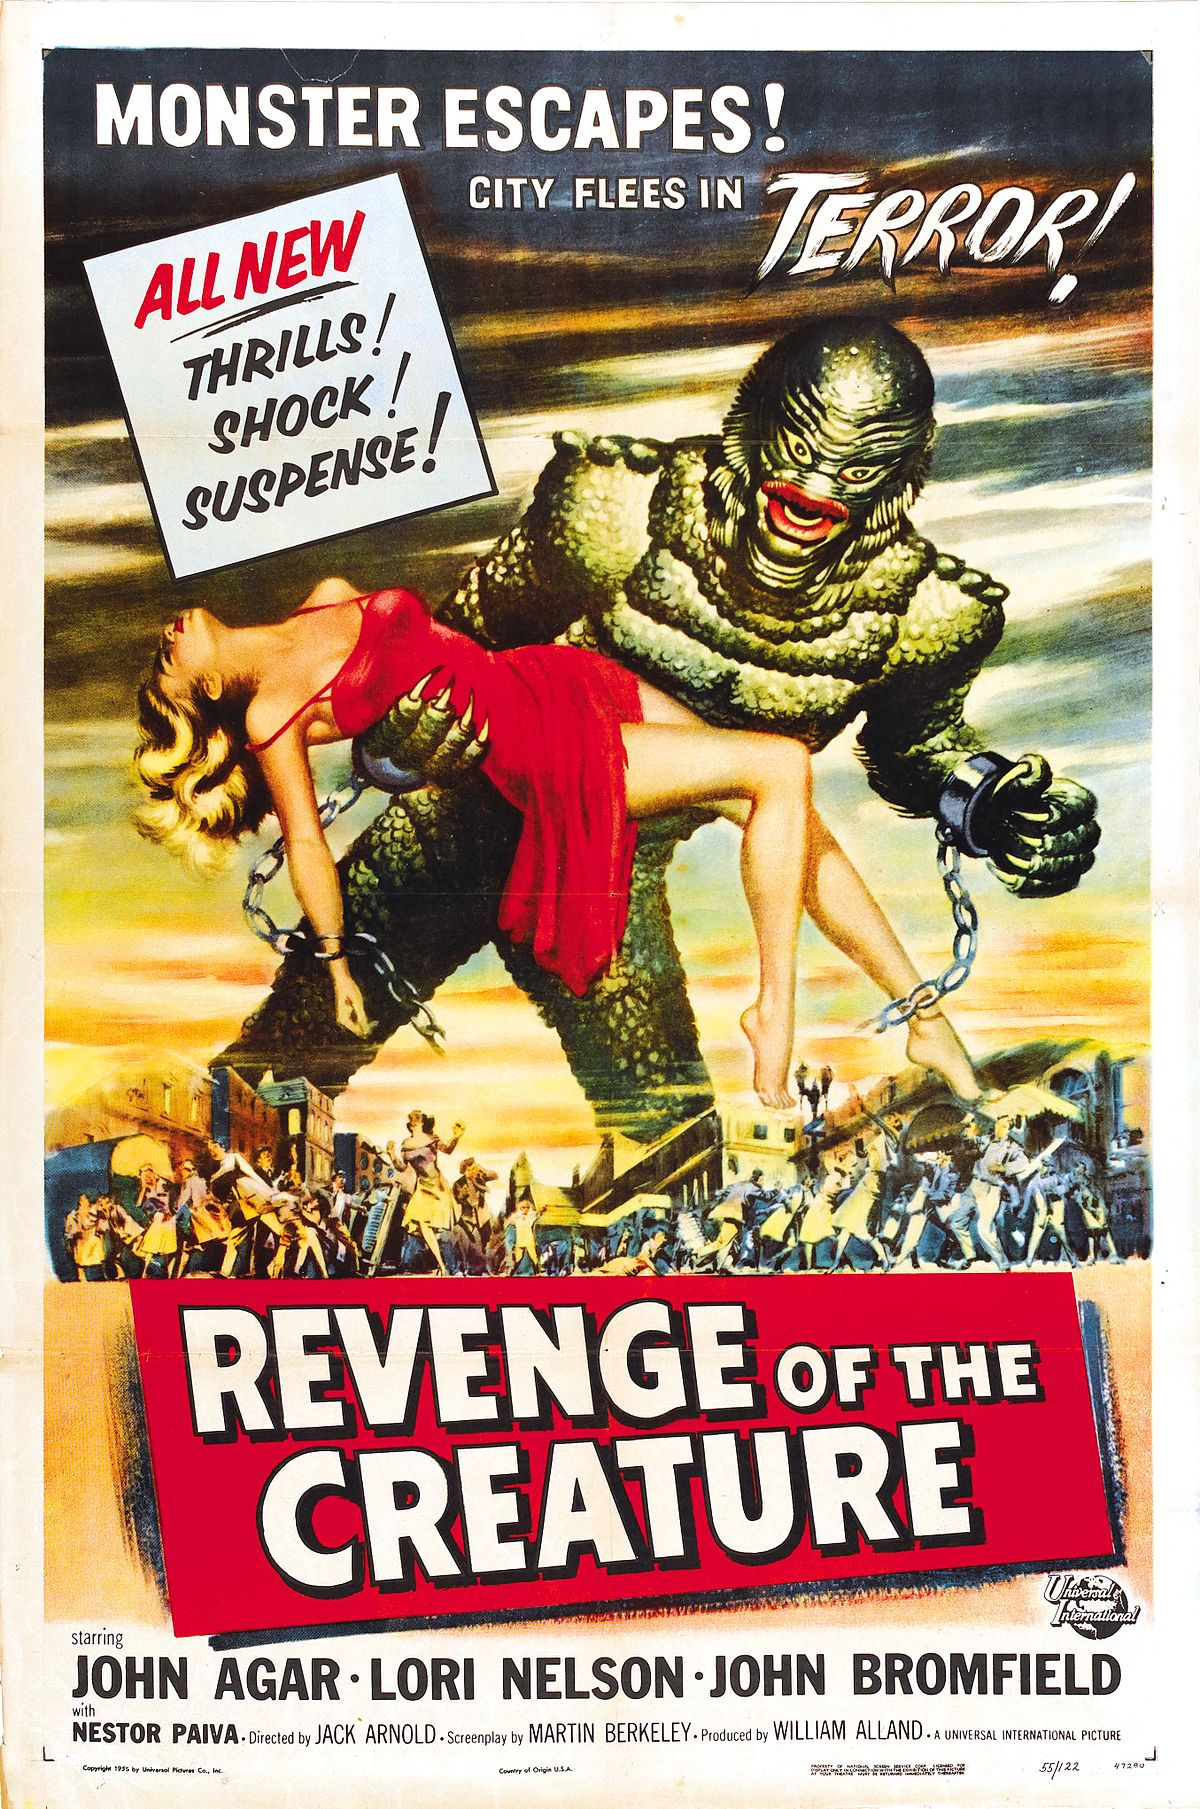 Revenge of the Creature - Wikipedia